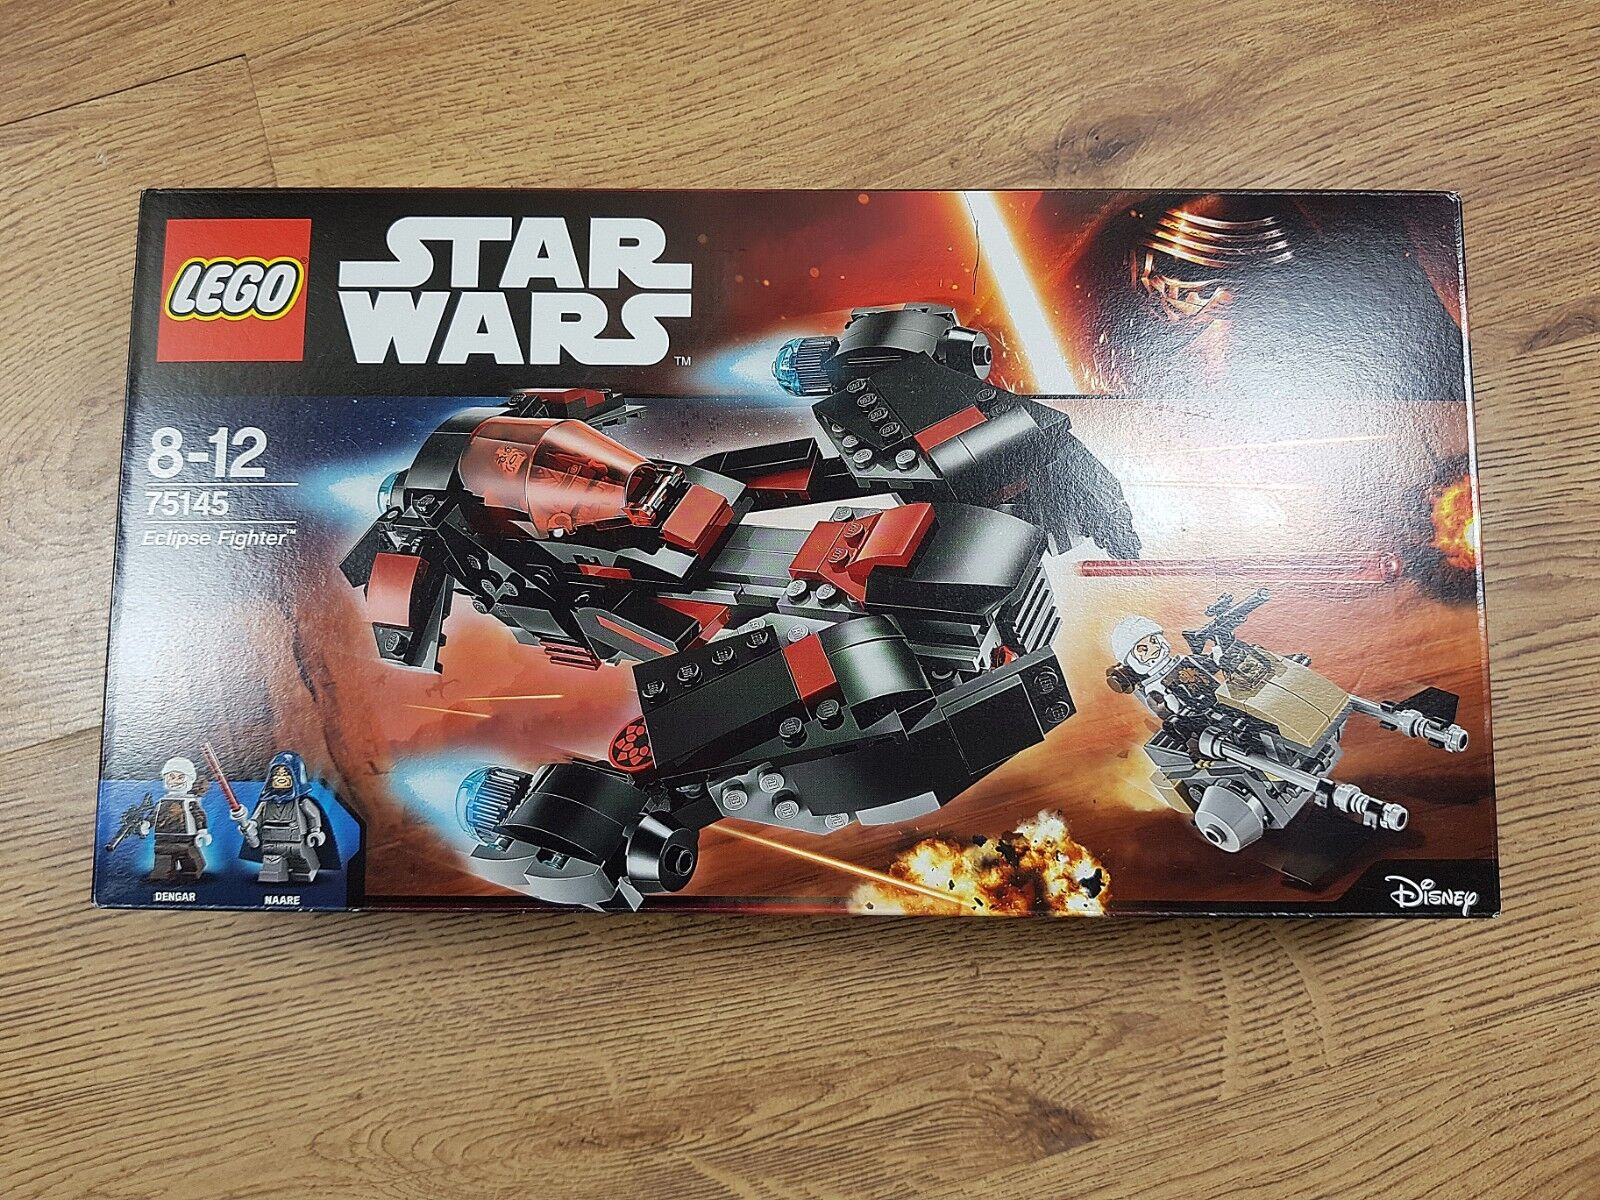 LEGO Star Wars 75145 Eclipse Fighter (2016)   New, Unopened, Great Condition